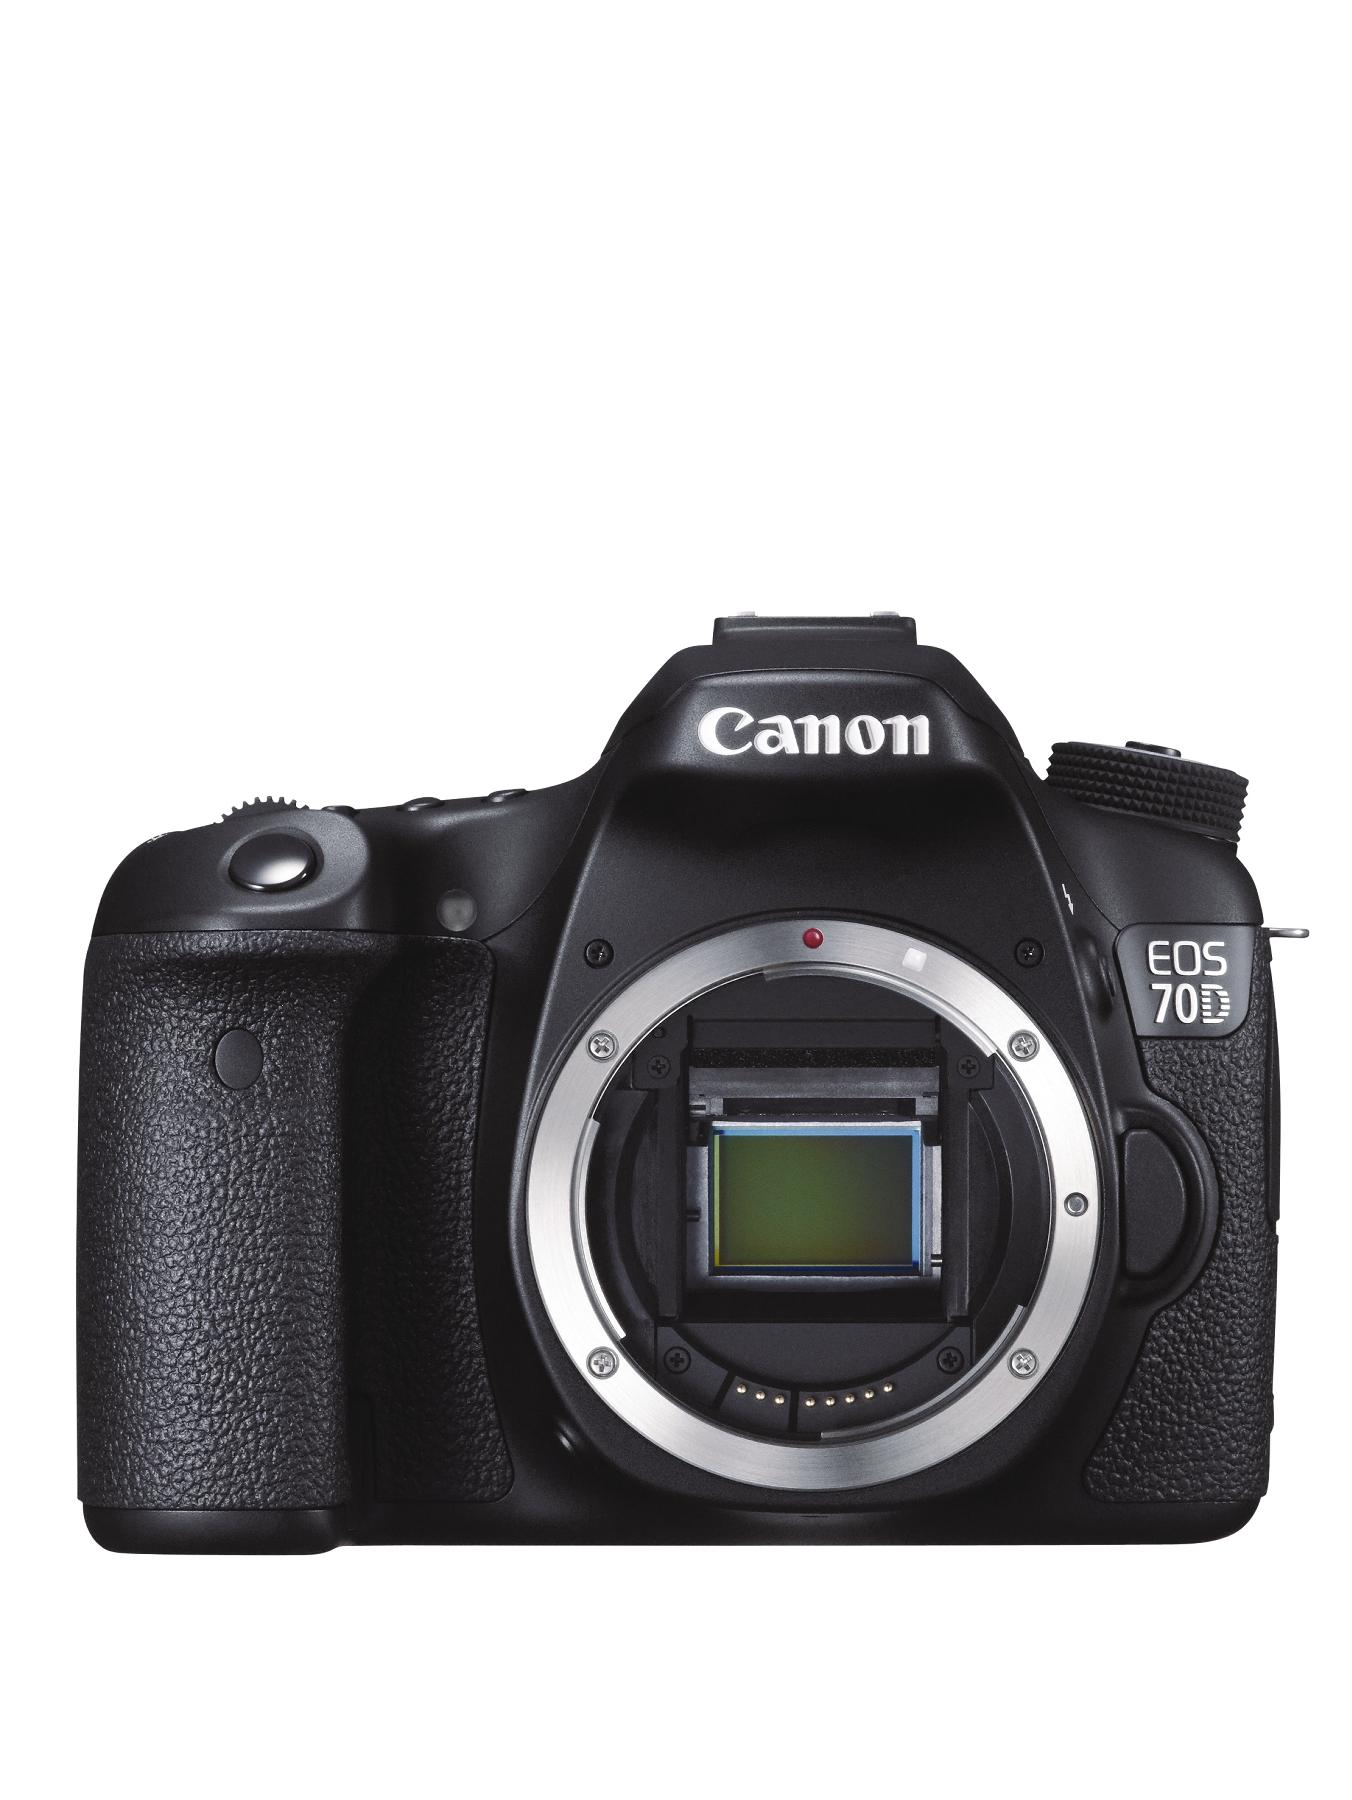 Canon EOS 70D SLR 20.2 Megapixel Camera Body Only at Very, from Littlewoods